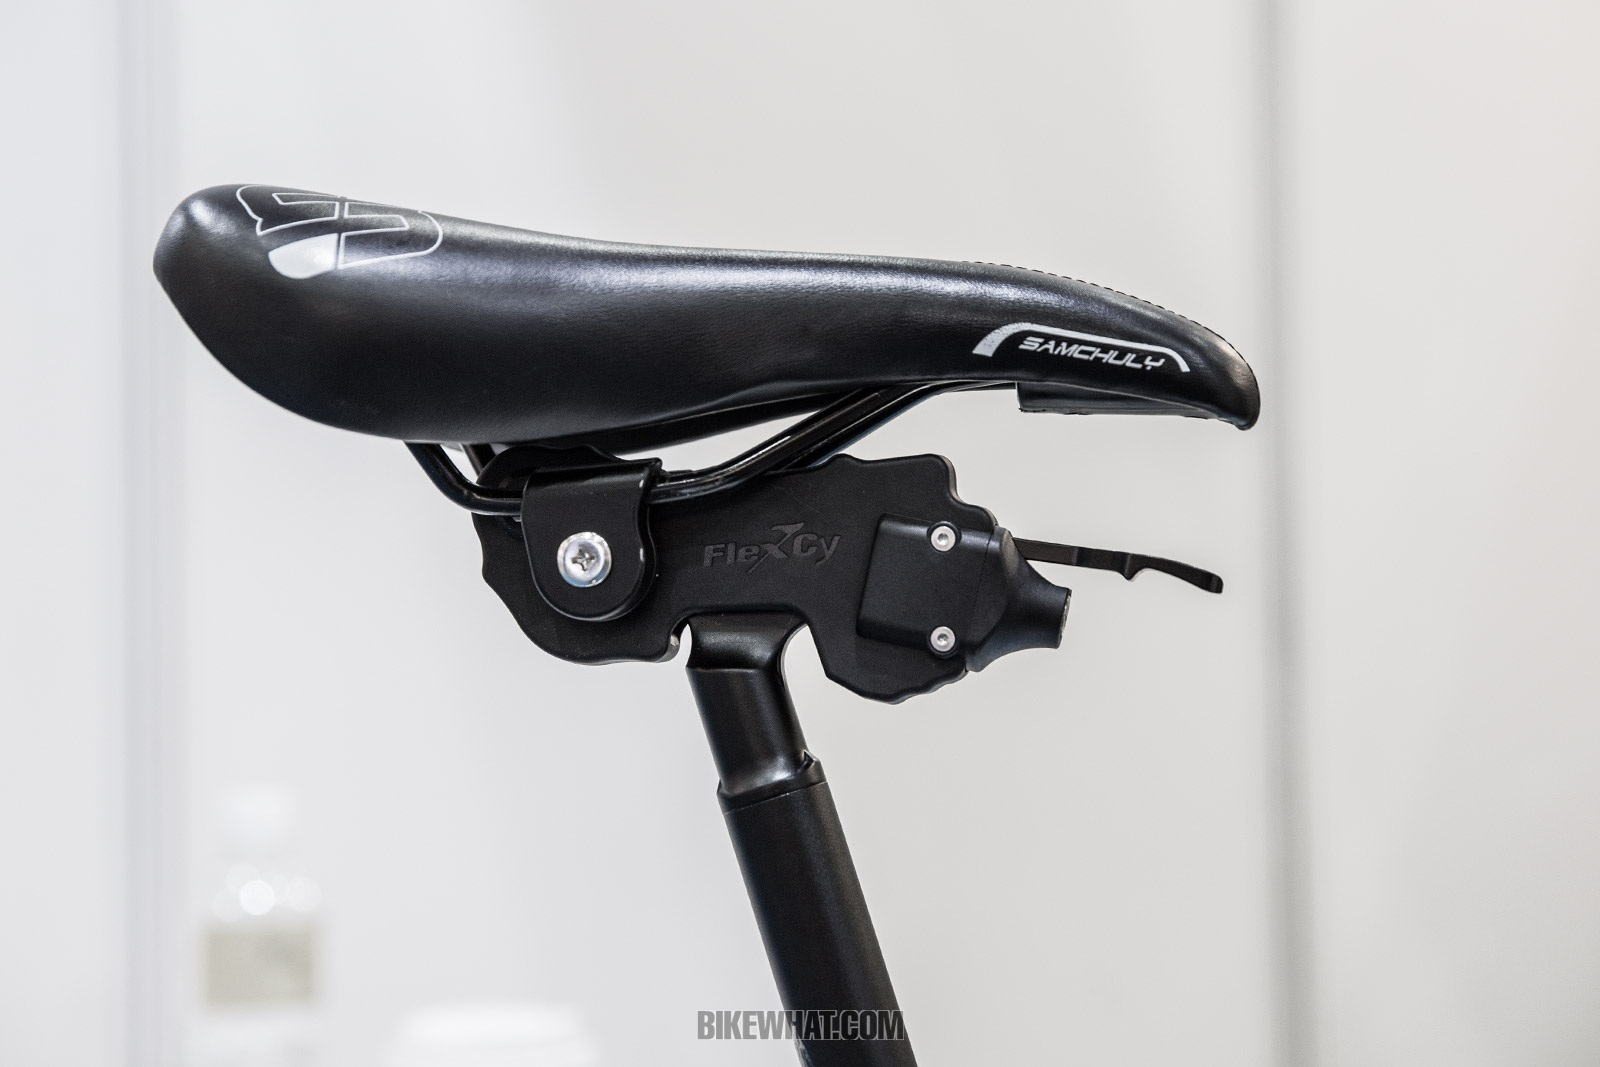 Feature_TaipeiCycle_2019_Flexcy_1.jpg